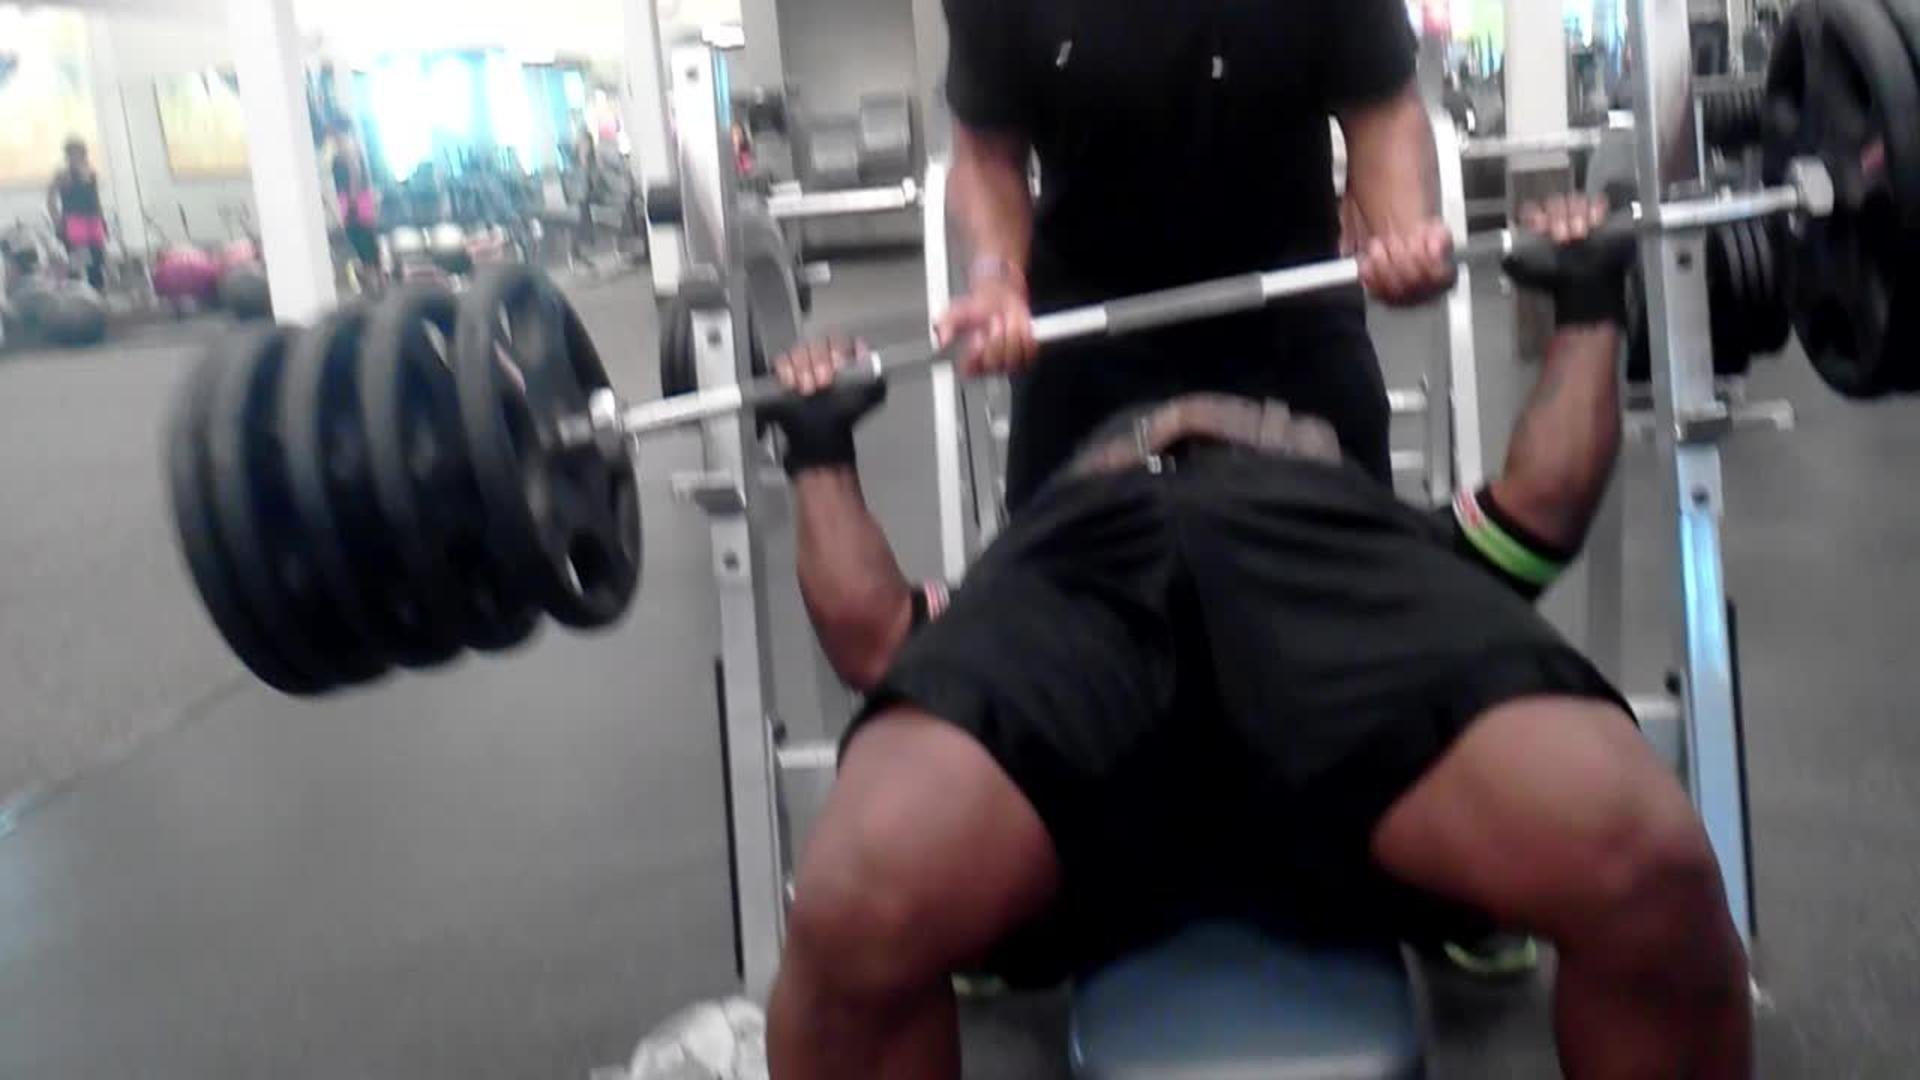 Bench Press Safety Bars Fail Jukin Media Inc